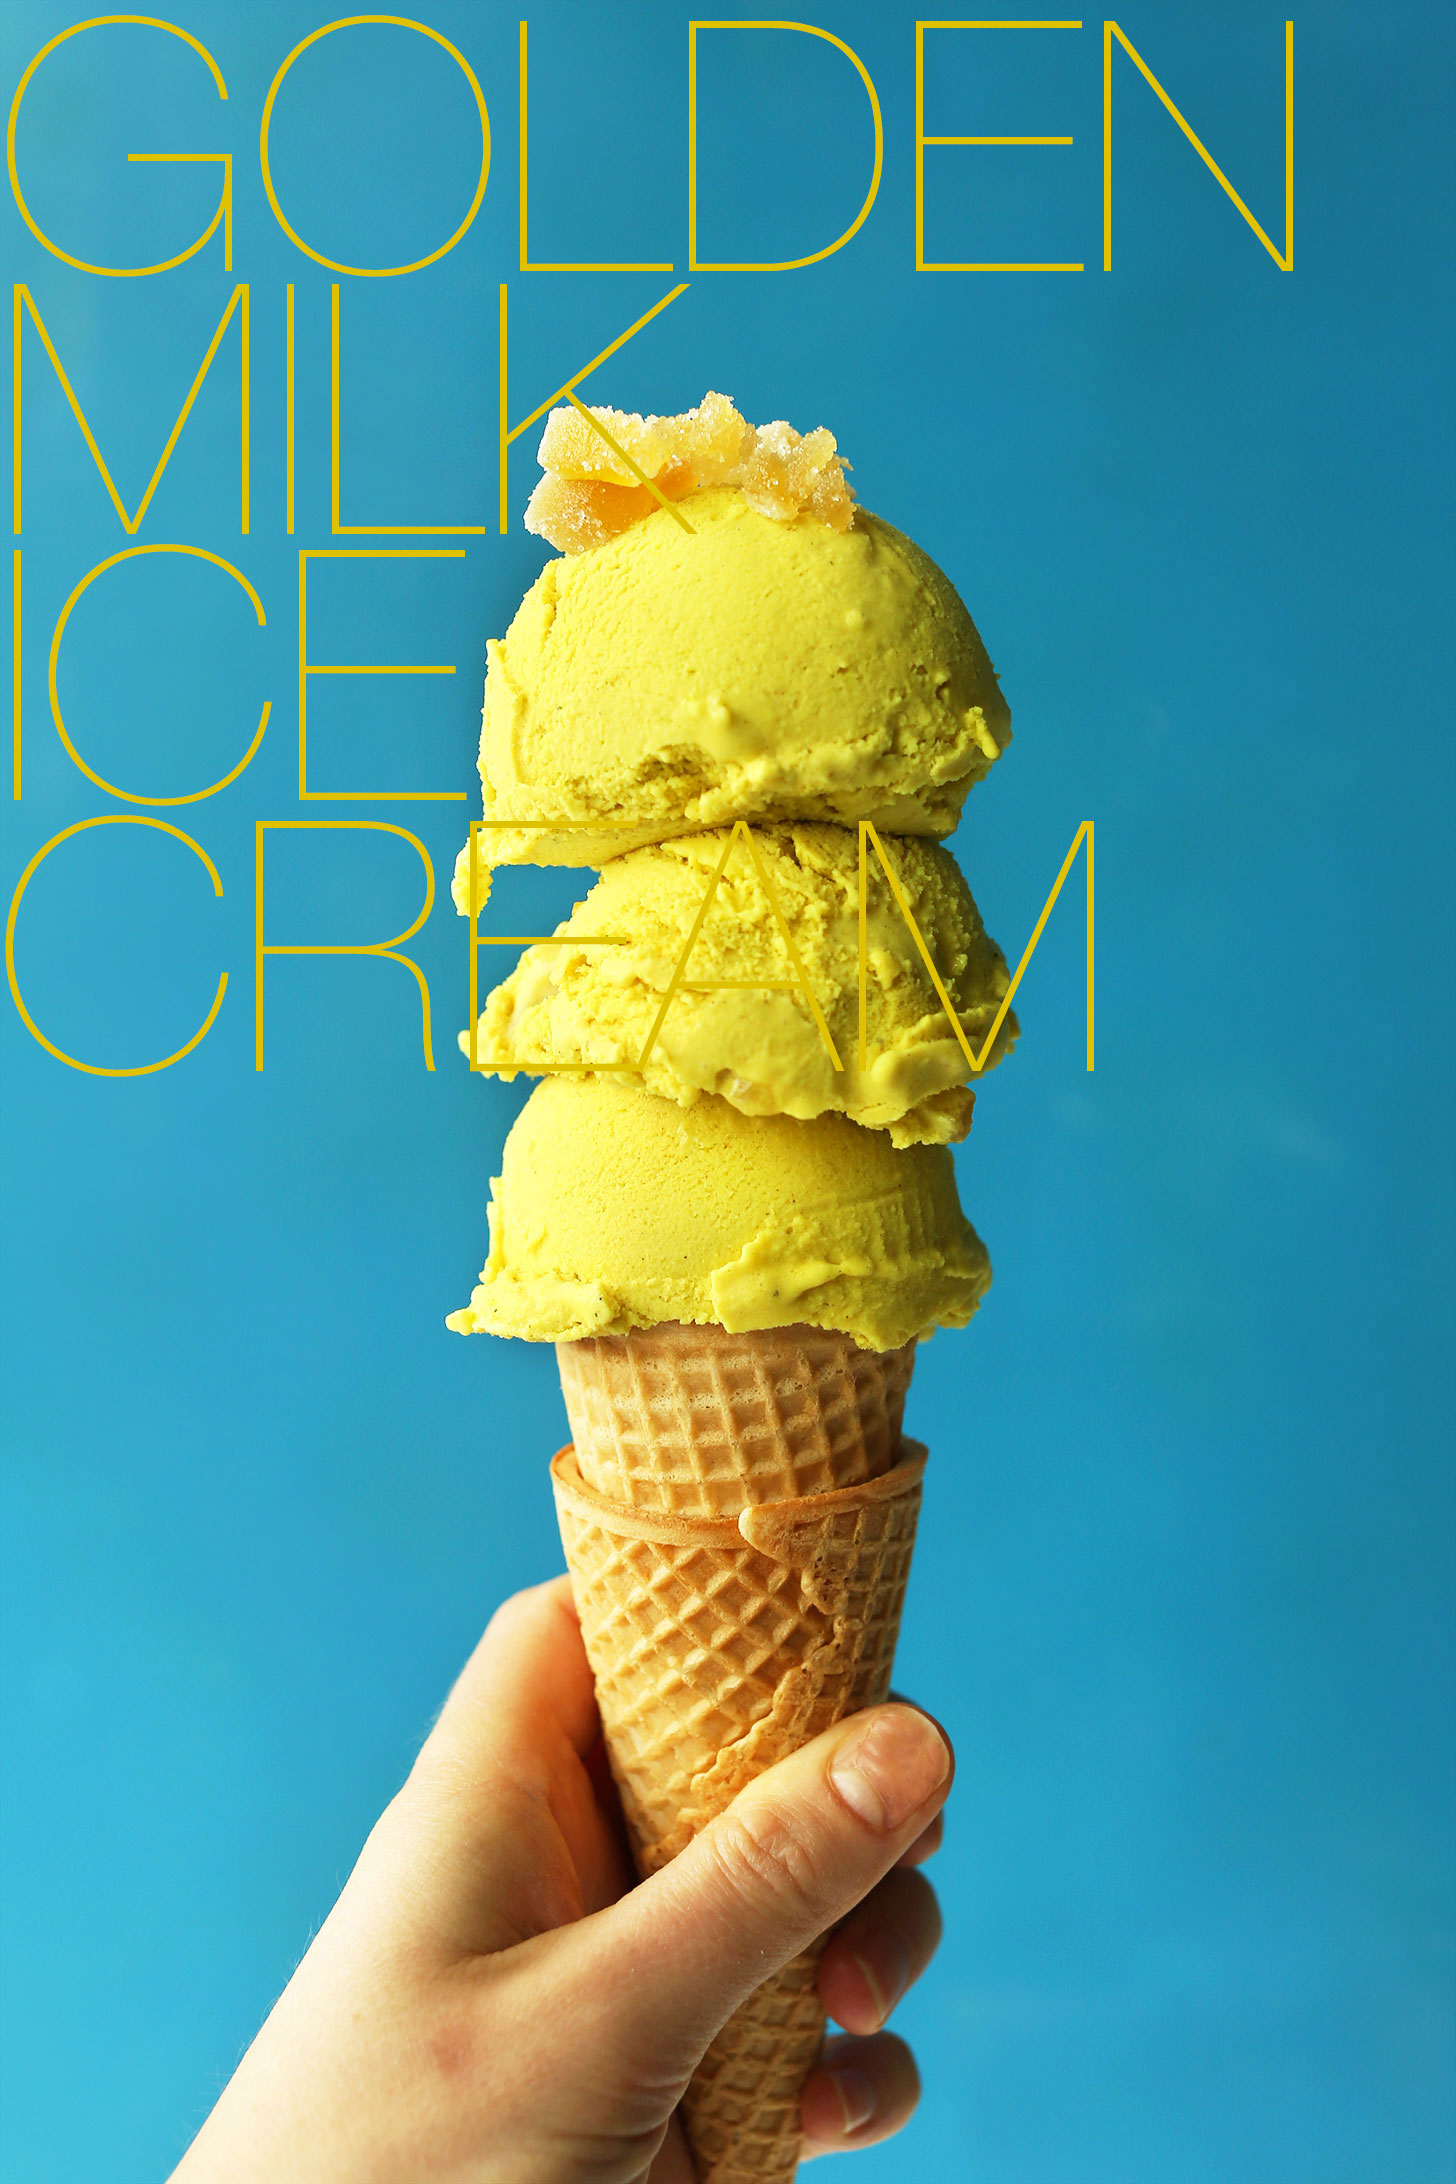 Amazing-golden-milk-turmeric-ice-cream-vegan-glutenfree-icecream-goldenmilk-turmeric-healthy-icecream-recipe